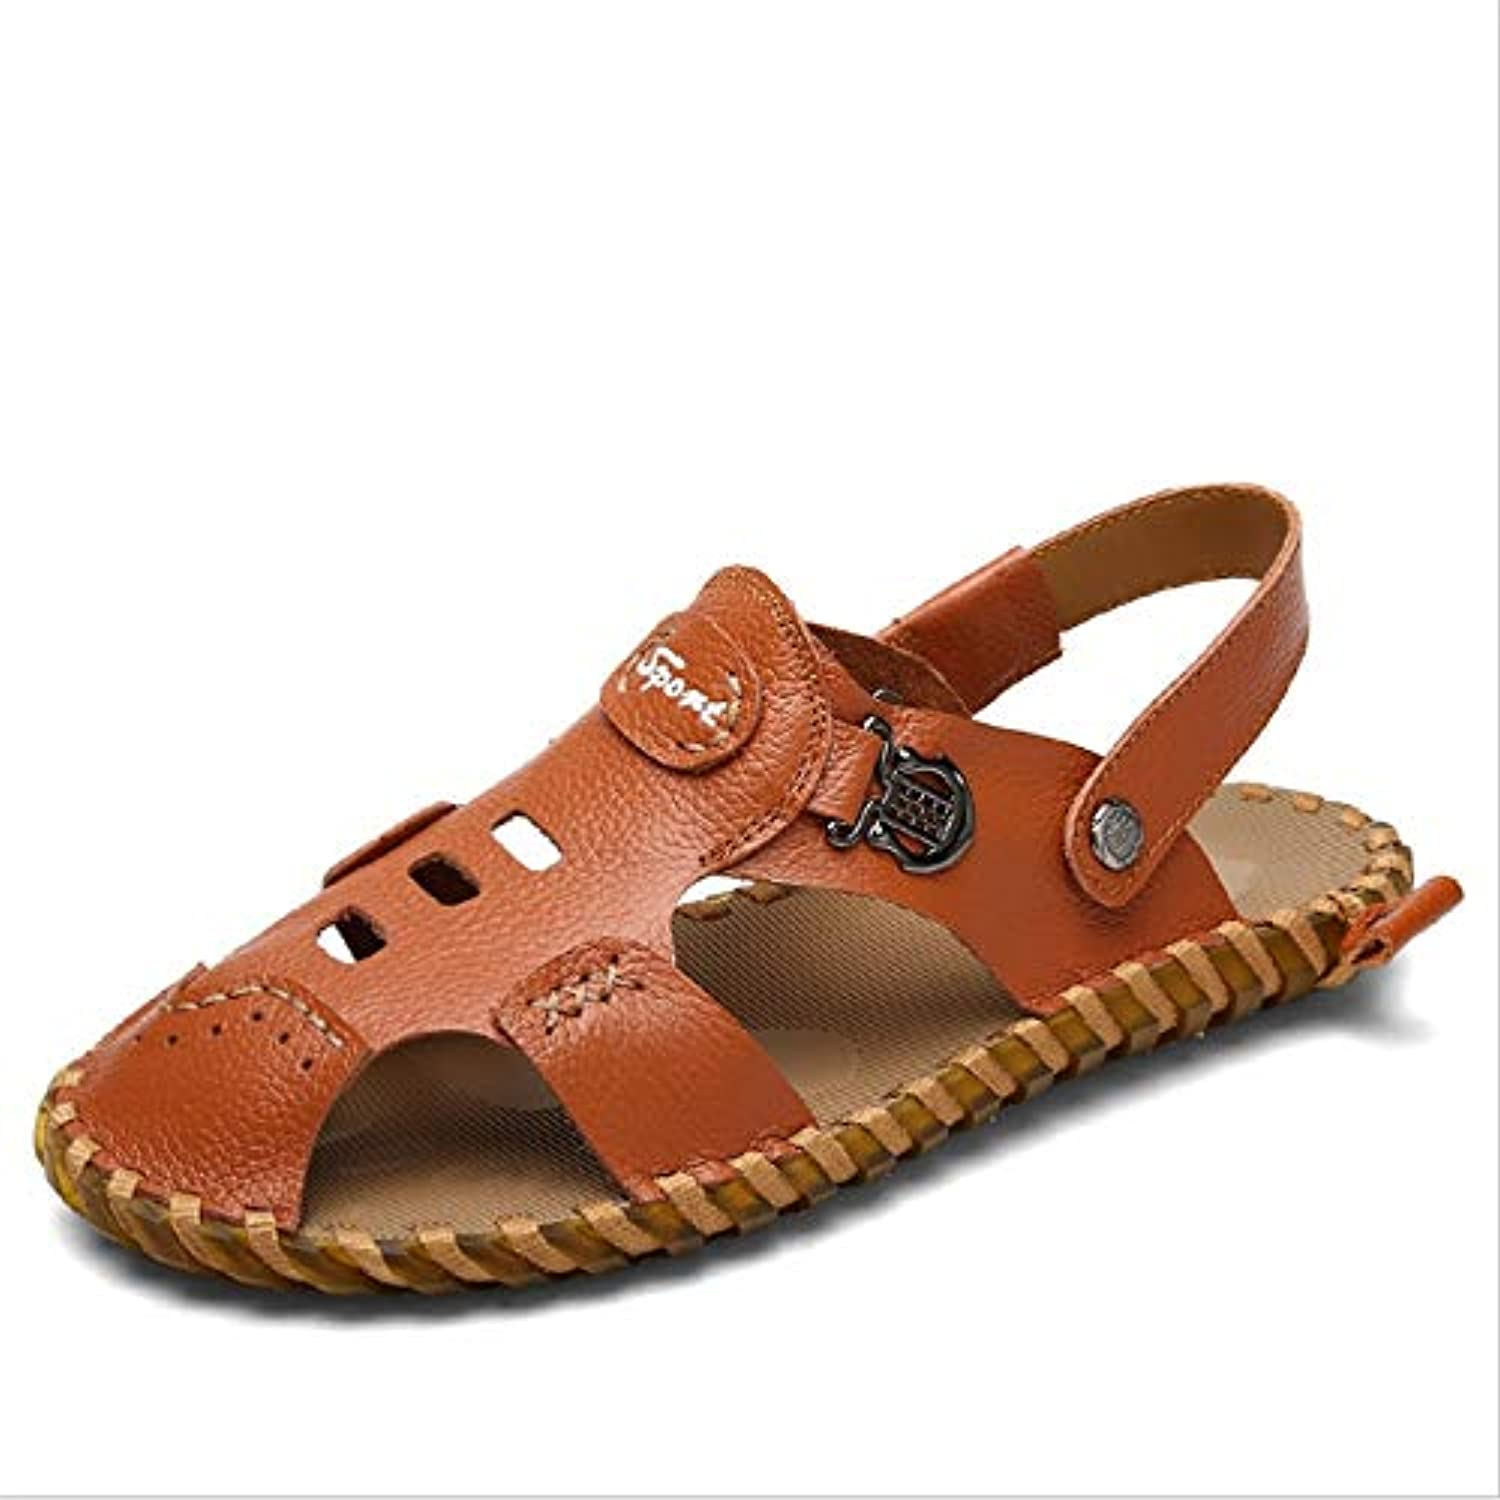 D Sandal Anti Hommes De Air Sports Plein Wangcui T76vRq